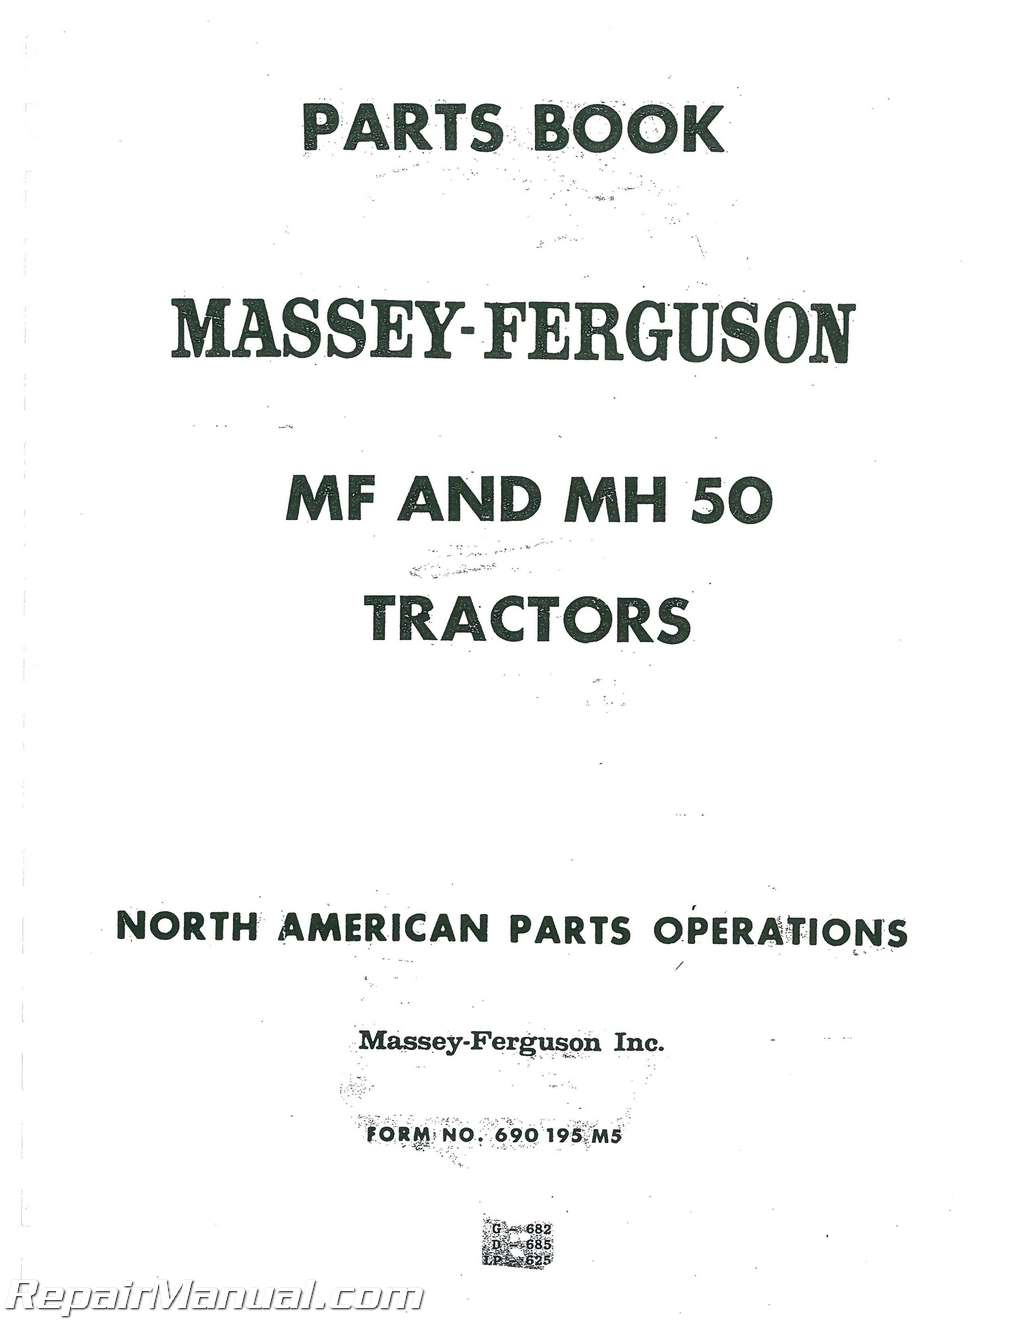 Massey-Ferguson-MF-50-MH-50-Parts-Manual_001.